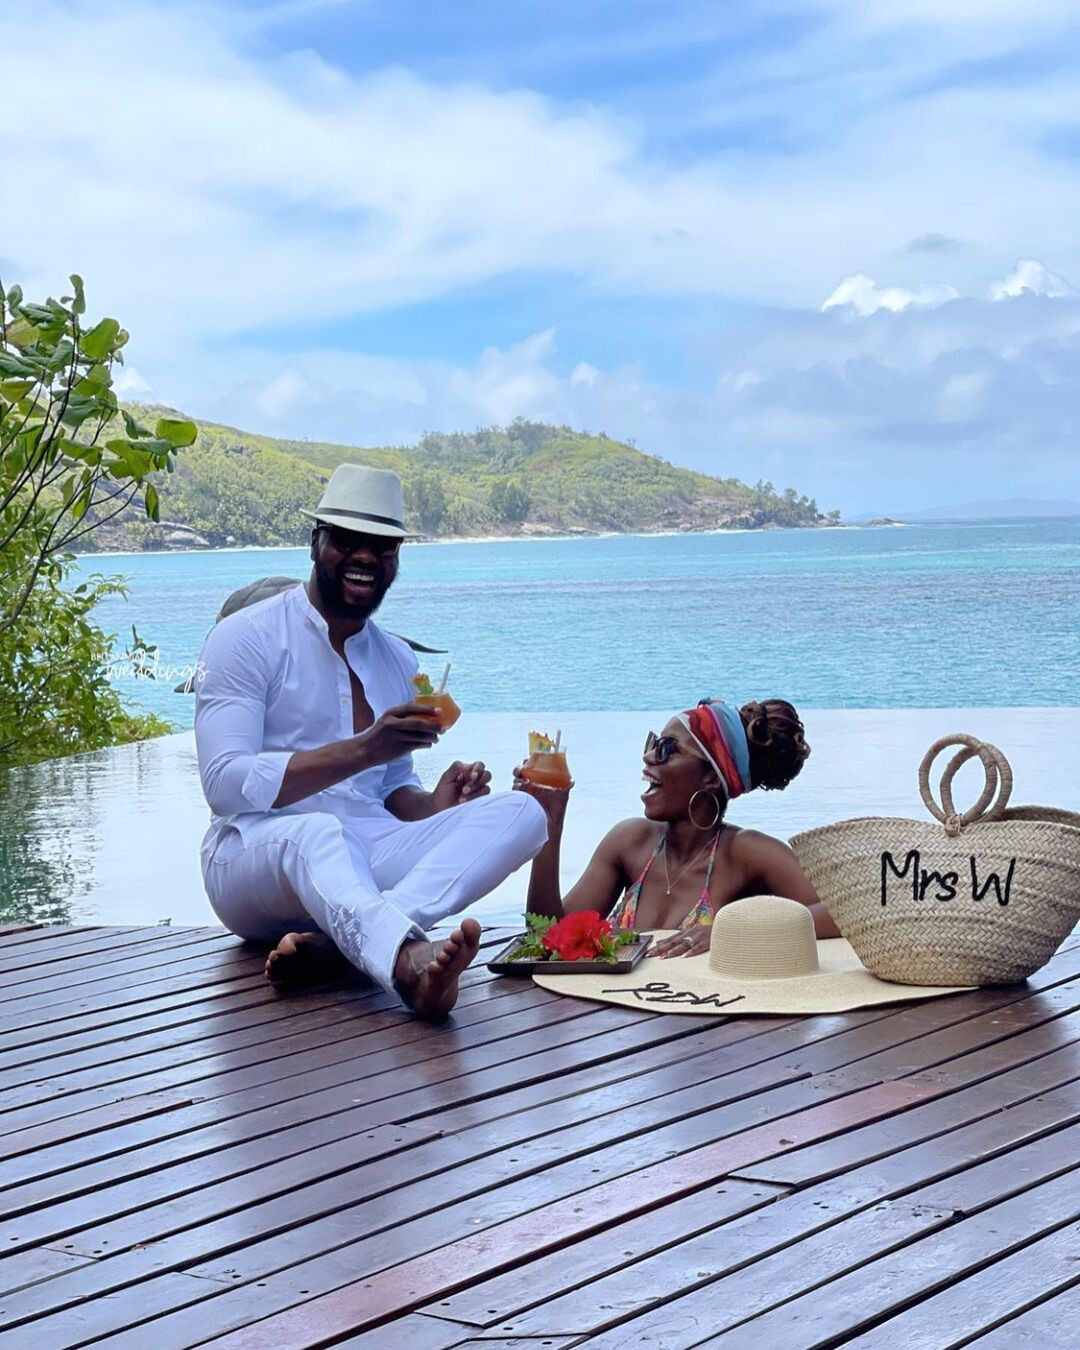 6140904baeb63 - Media personality, Debola Williams and wife spend their honeymoon in Seychelles